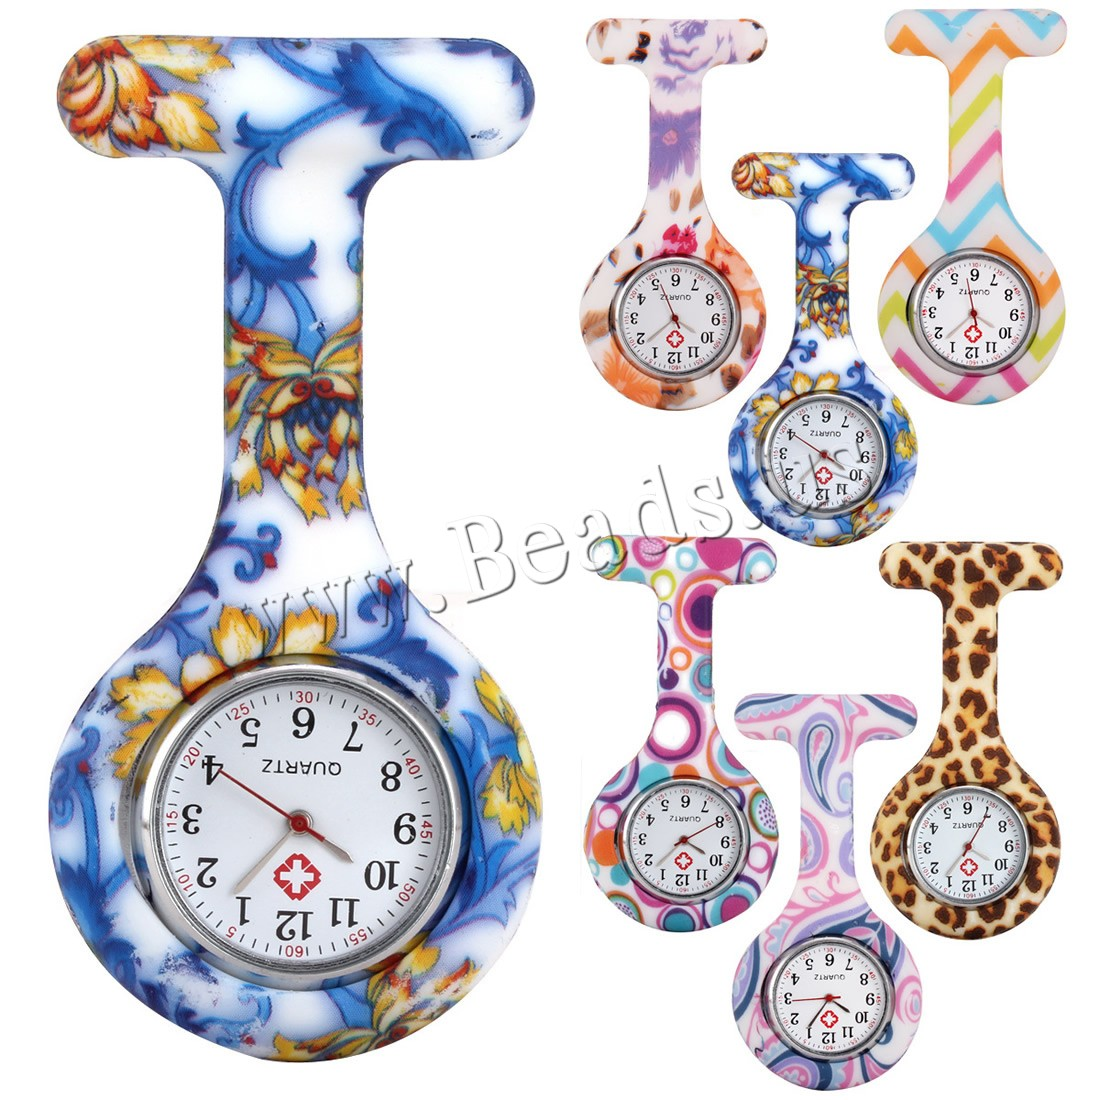 Nurse Watches Fashion Colorful Silicone Medical Portable Brooch Fob Pocket Quartz Watch Hanging Pendant With Clip Gift 6 Styles